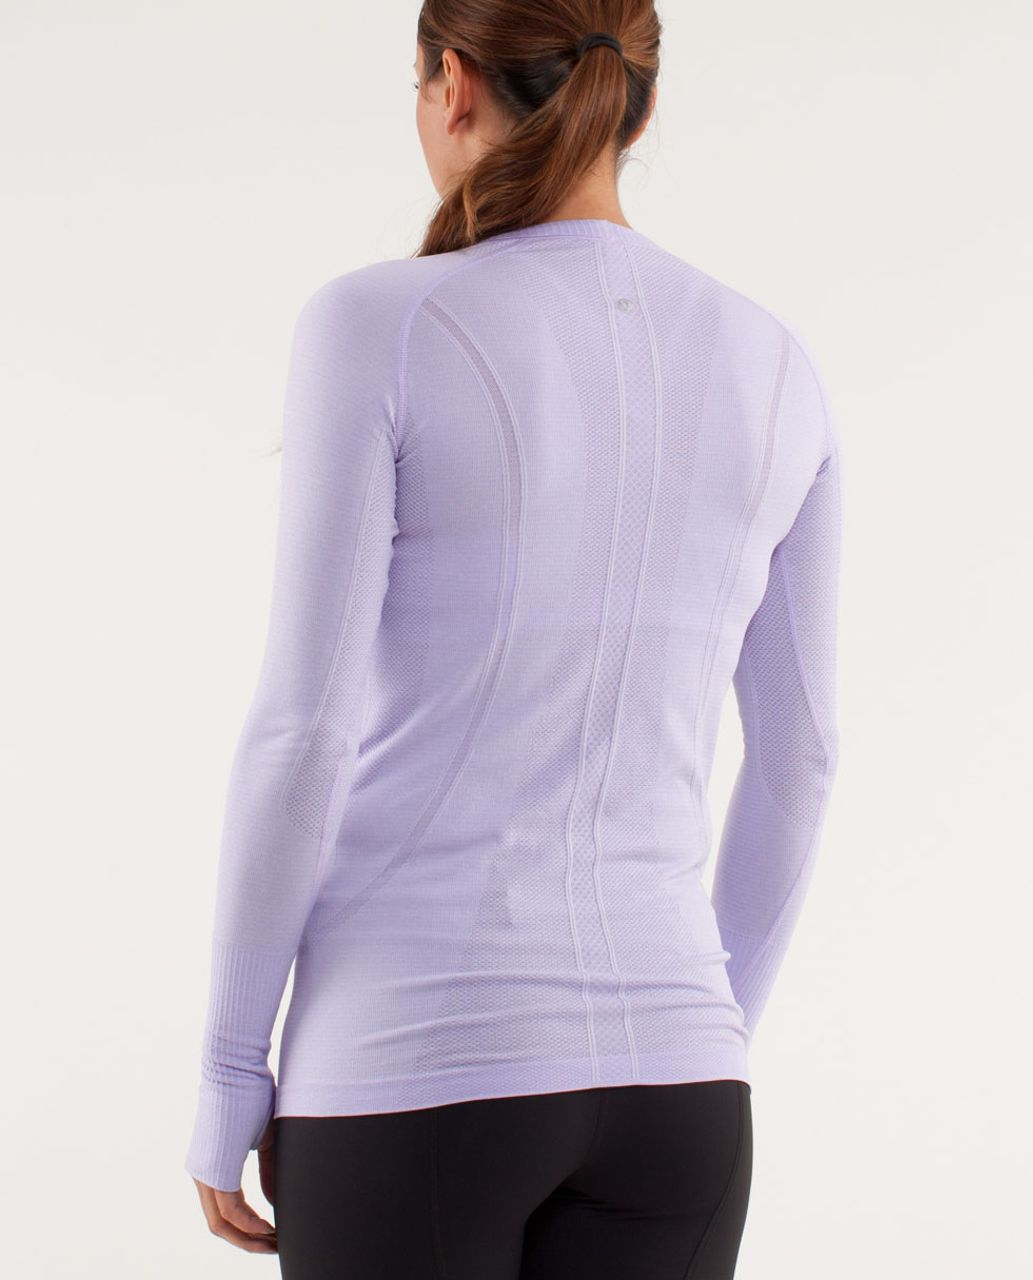 Lululemon Run:  Swiftly Tech Long Sleeve - Lilac